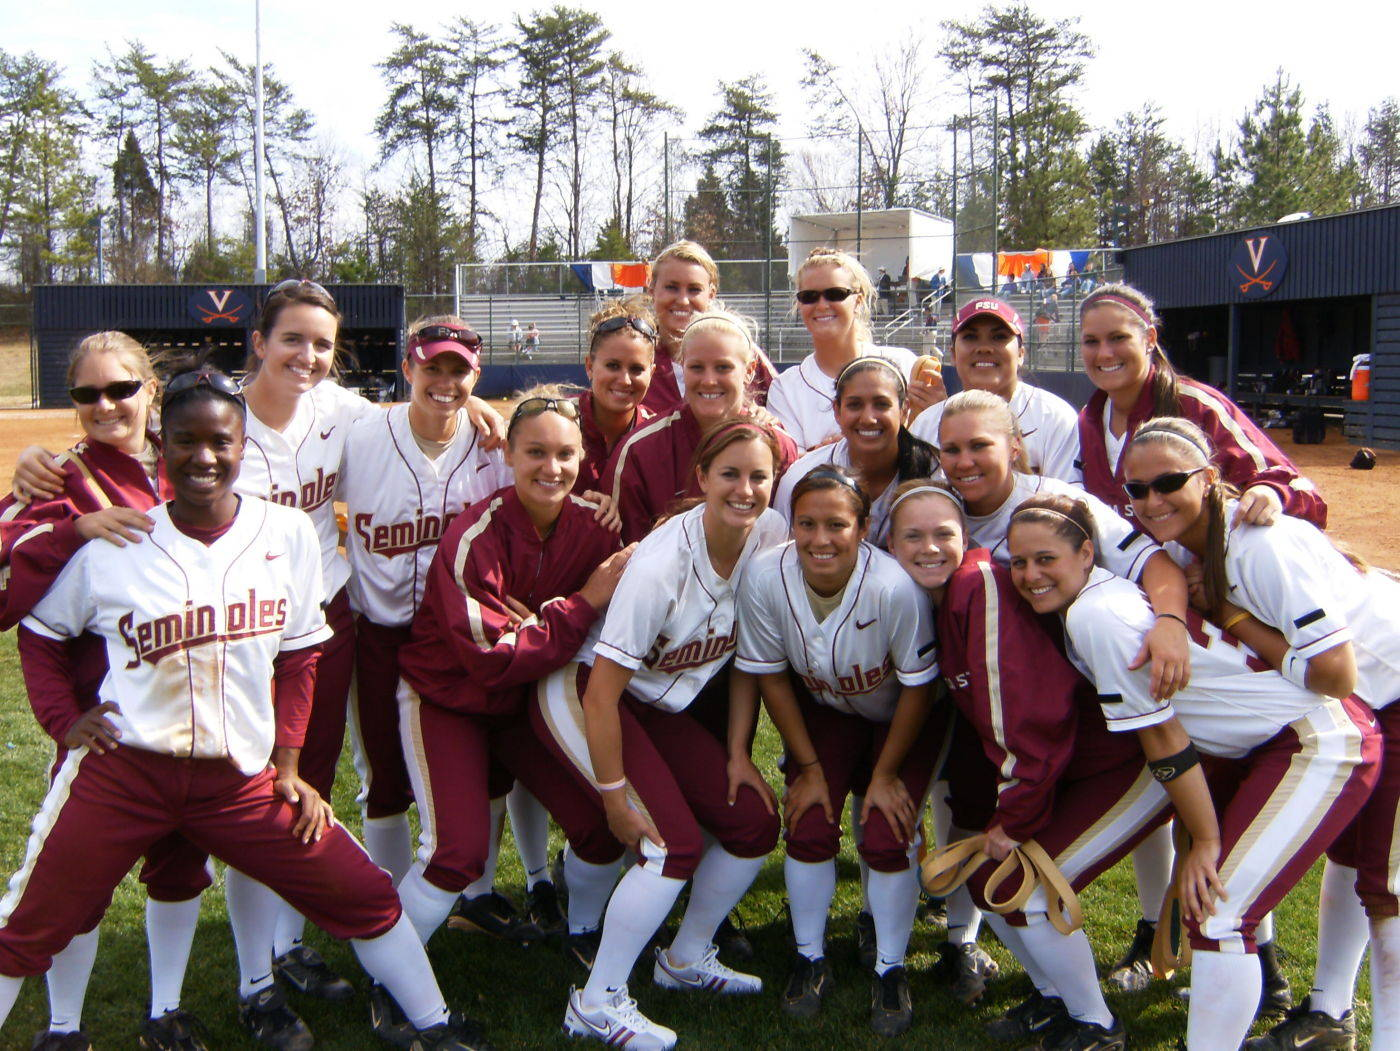 Florida State vs. Virginia - 3/15/08